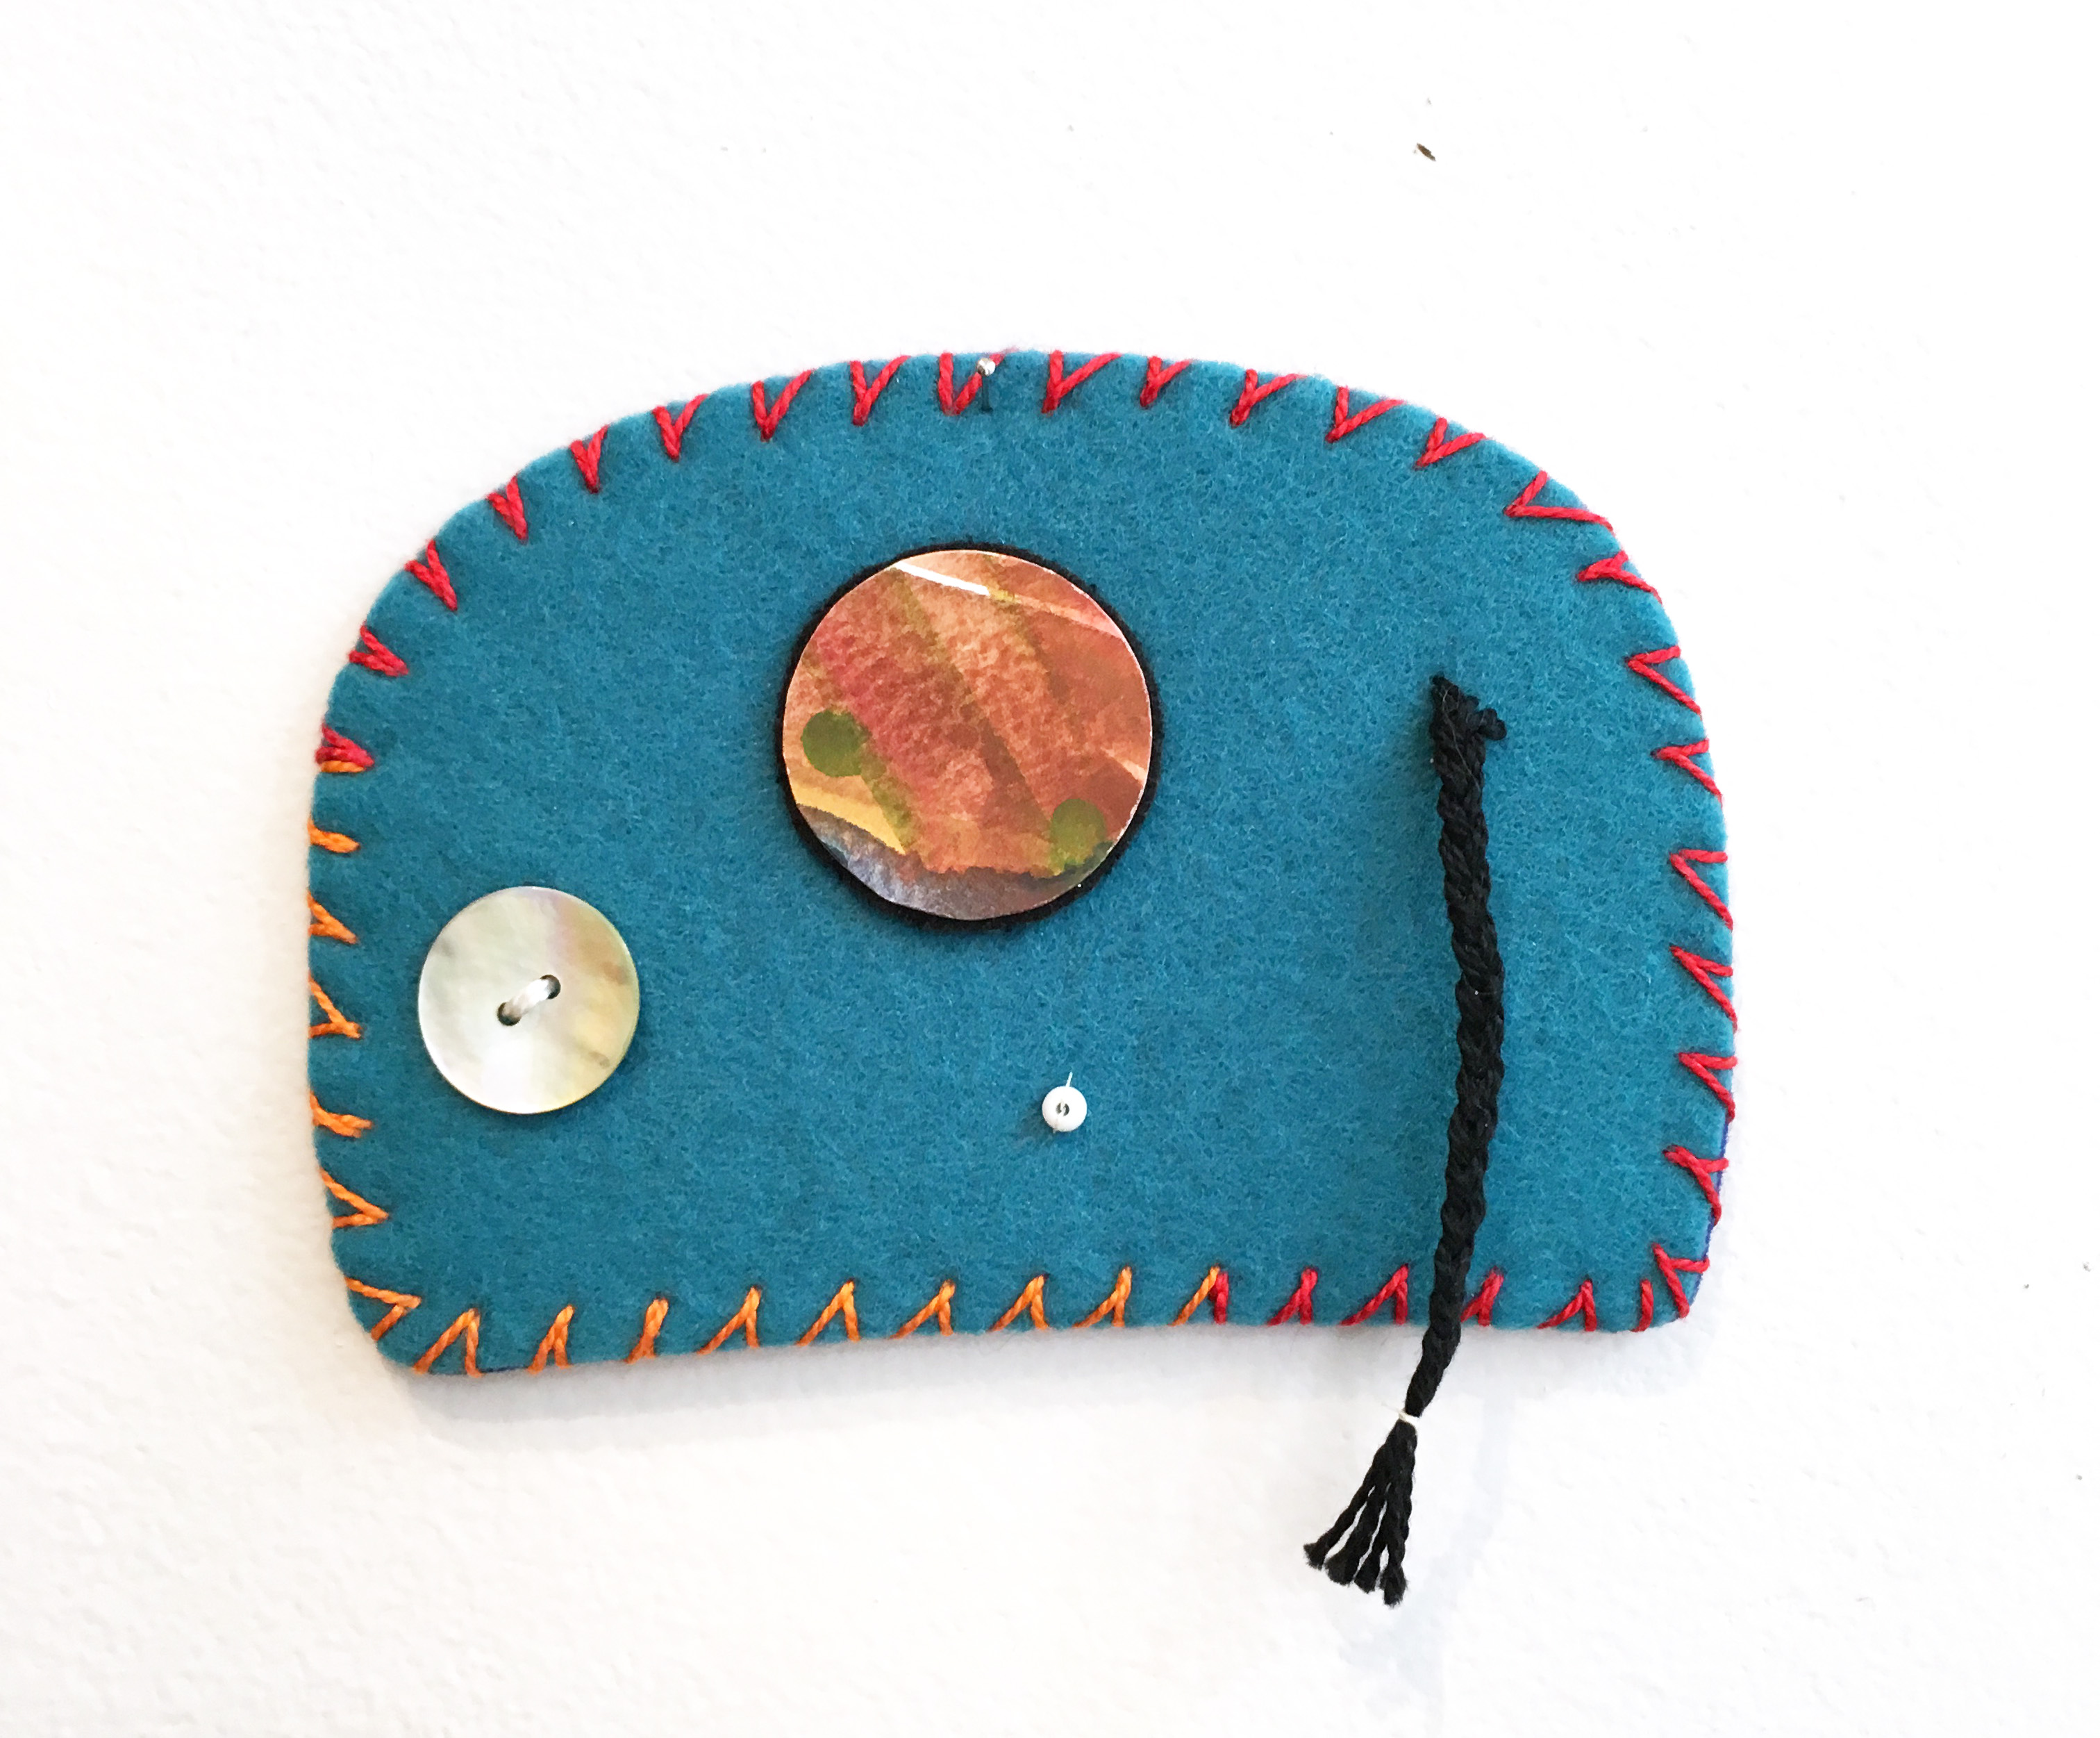 Ovoid Felts, Charlene Vickers (Anishnabe), Watercolour, paper, shell buttons, glass beads on felt with embroidery edges, $500